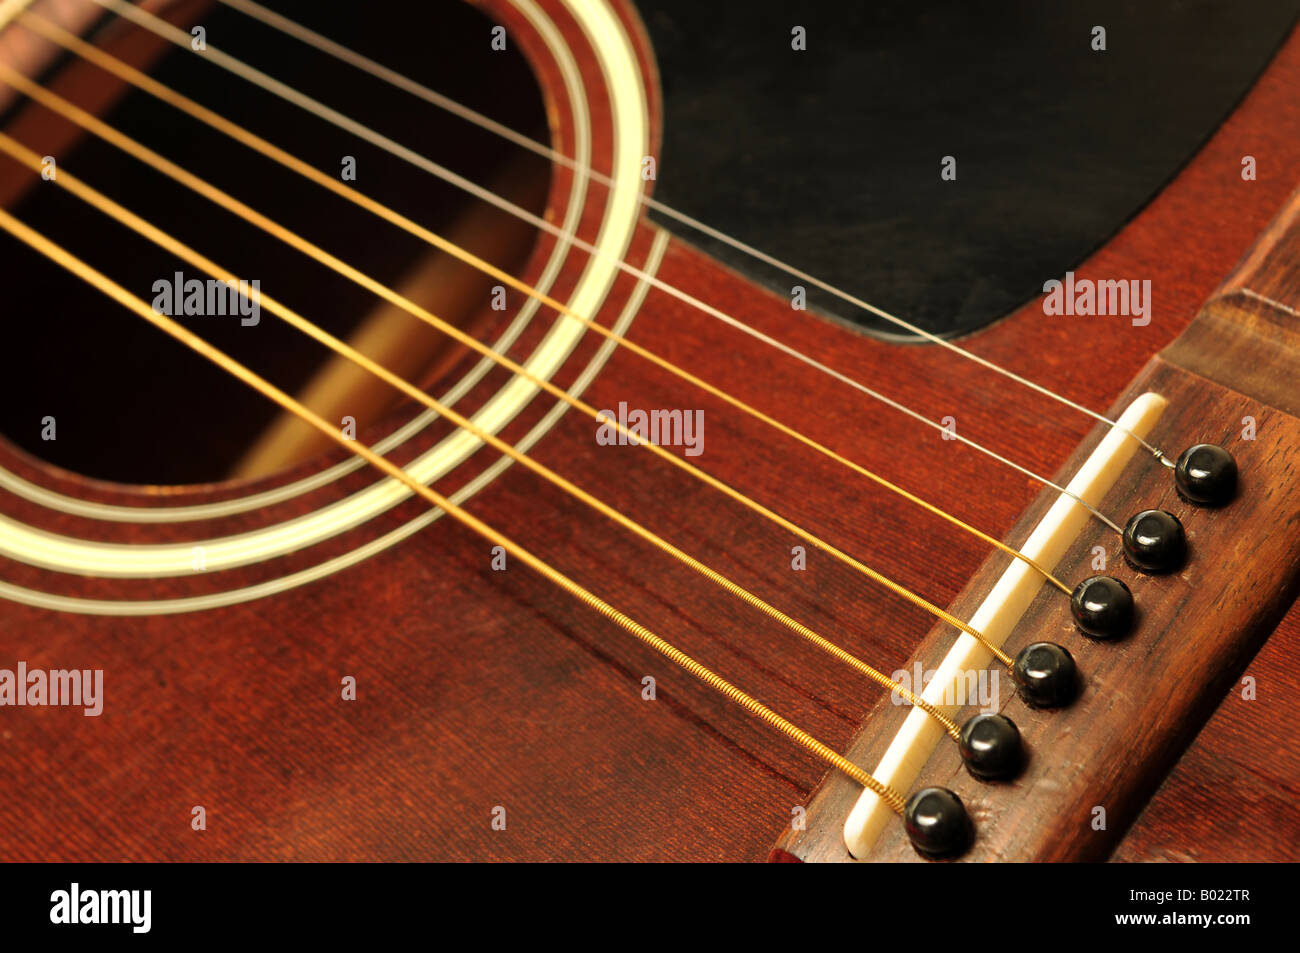 acoustic guitar bridge and strings close up stock photo royalty free image 17256535 alamy. Black Bedroom Furniture Sets. Home Design Ideas